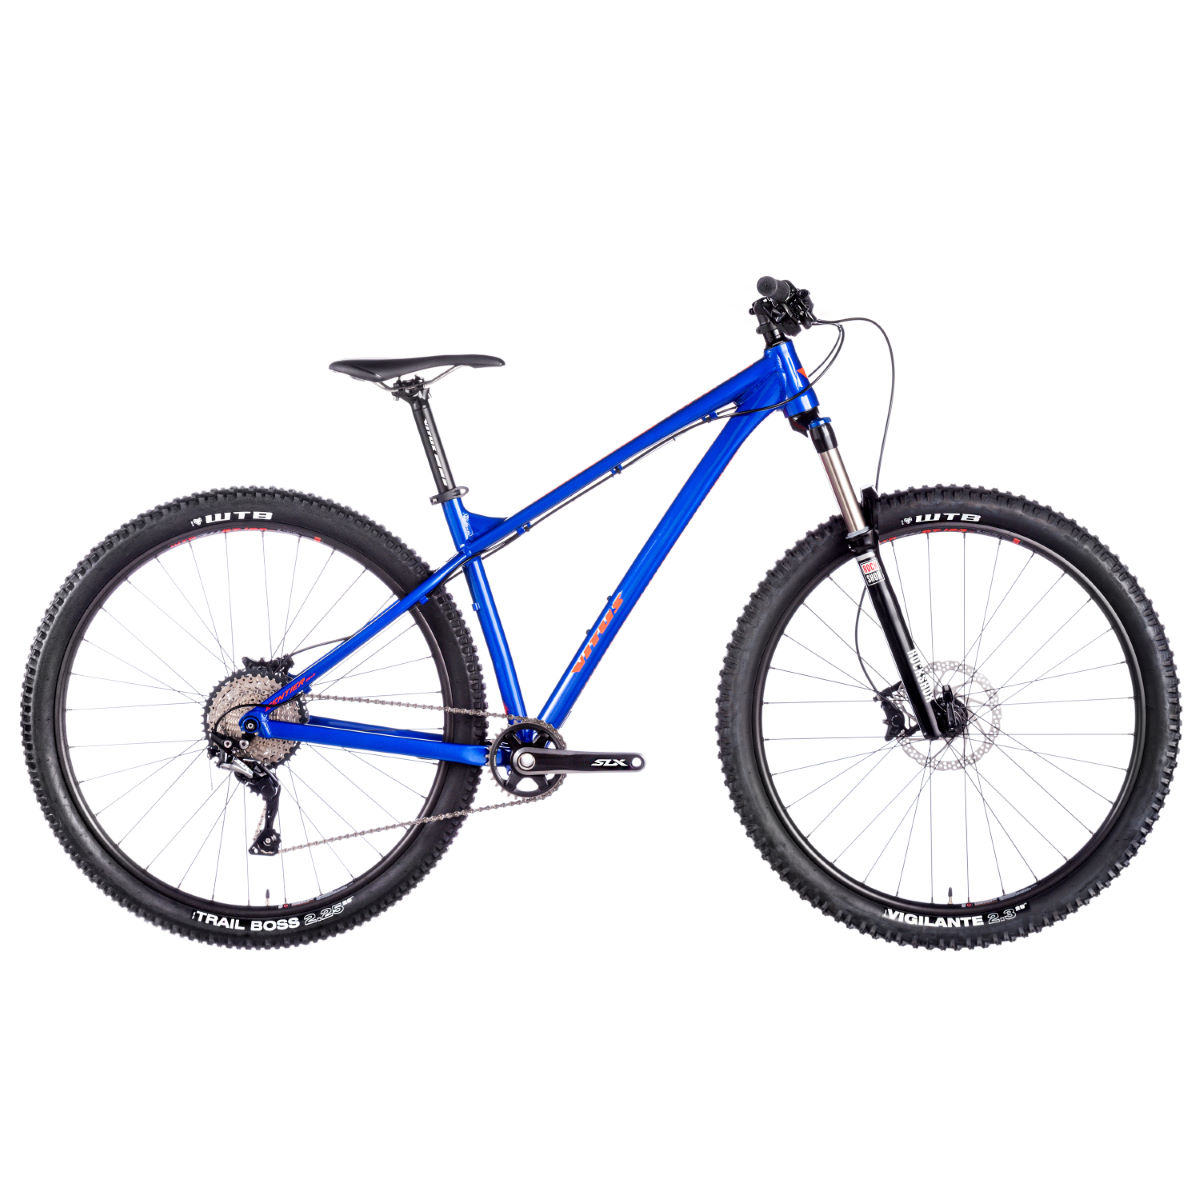 VTT Vitus Sentier 29VR (2017) - Medium Stock Bike Blue/Orange VTT semi-rigides